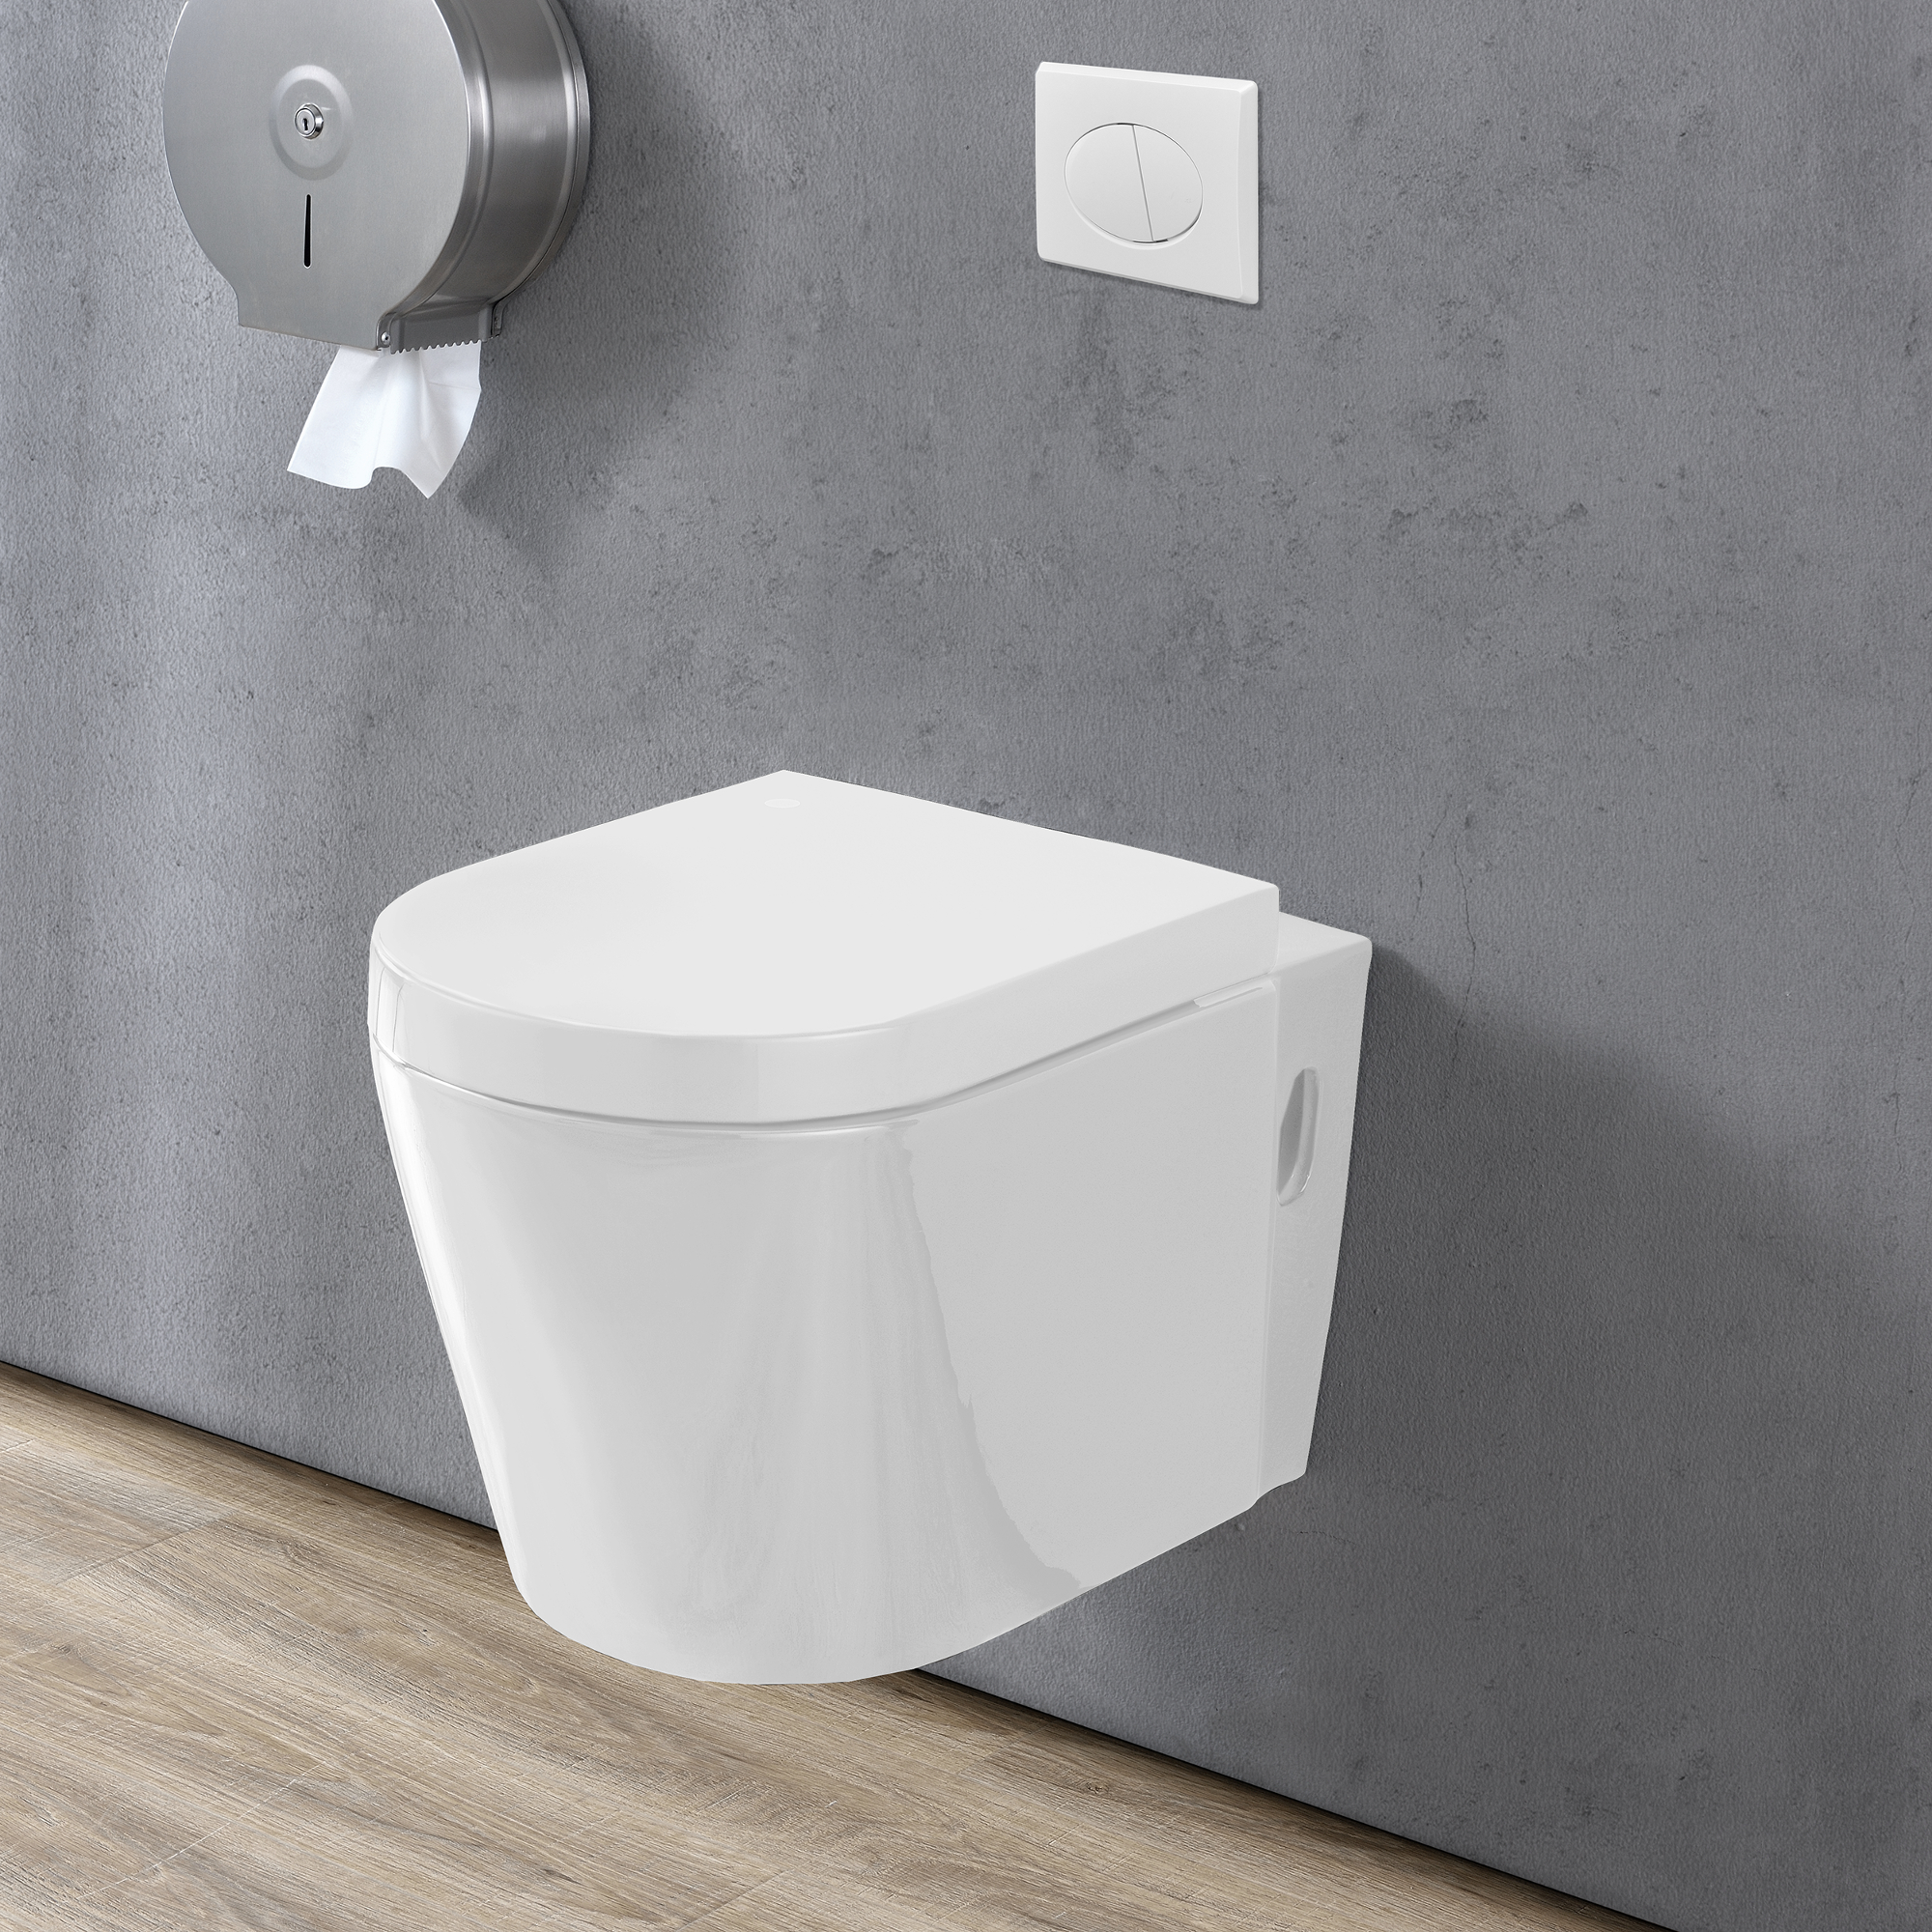 house ceramic wall hanging toilet soft closing mechanism white washdown model ebay. Black Bedroom Furniture Sets. Home Design Ideas